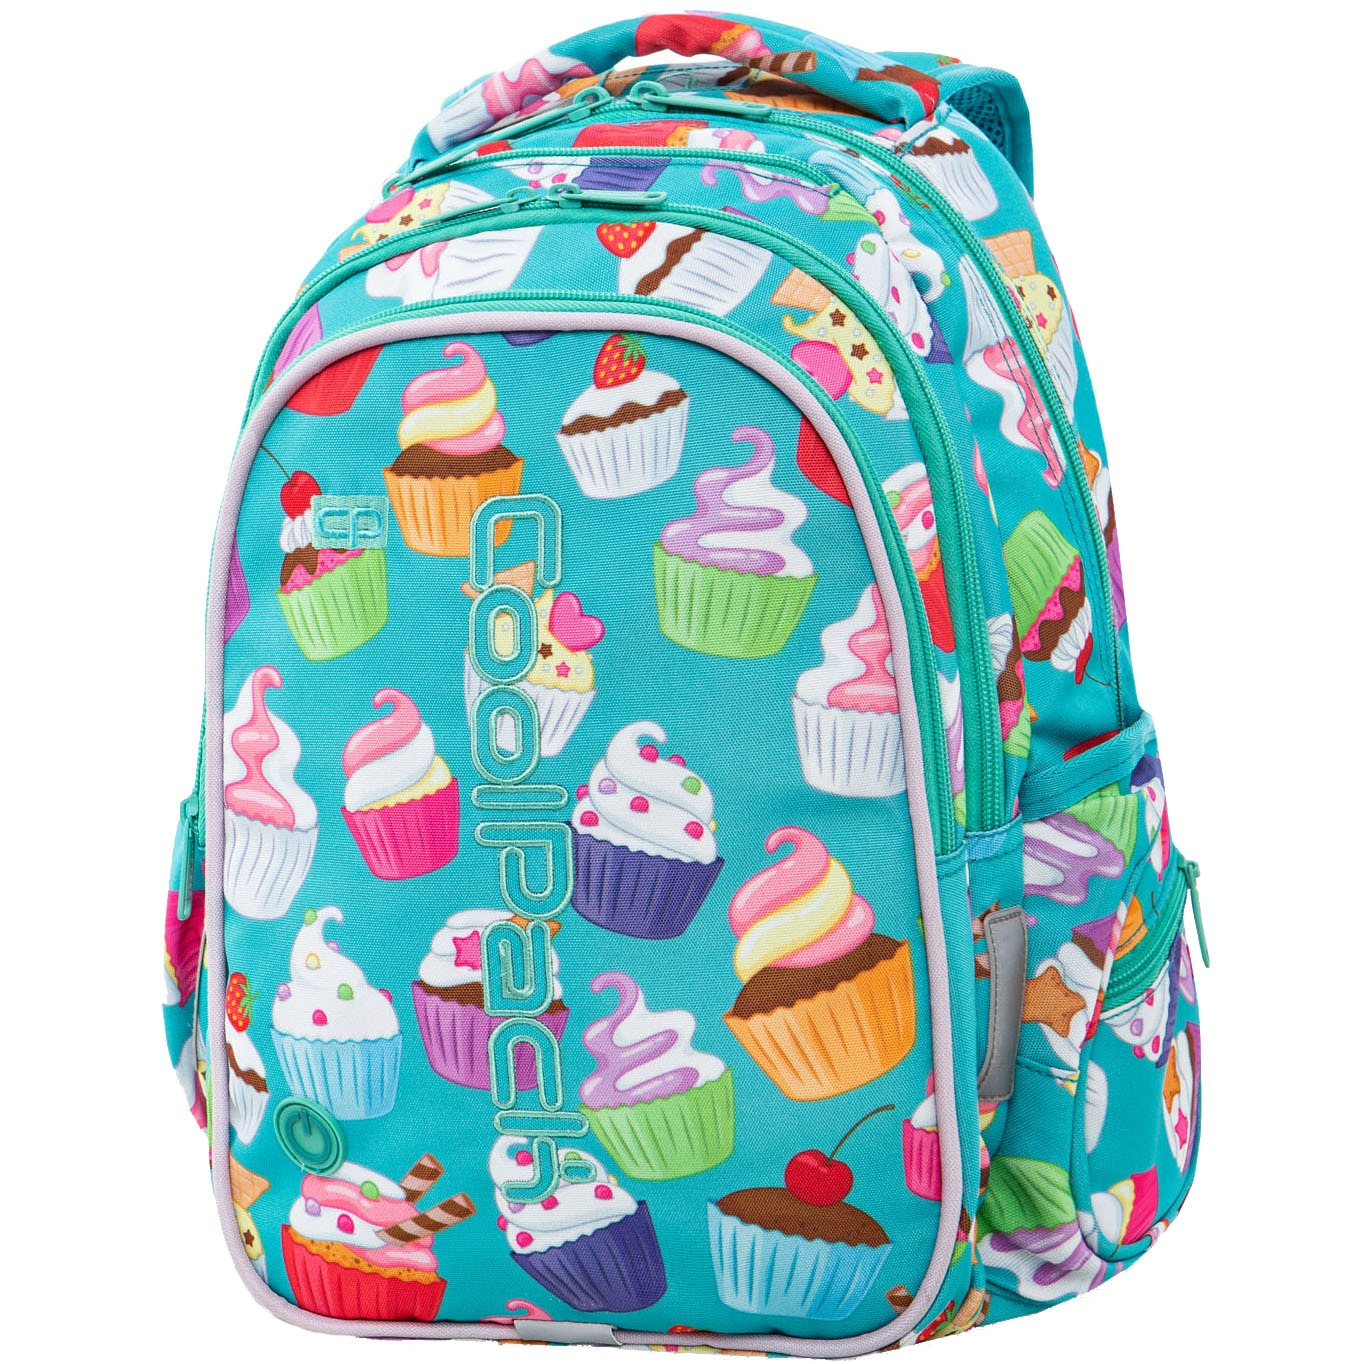 Fotografie Ghiozdan LED Coolpack JOY YOUTH CUPCAKES, 41 x 29 x 20 cm